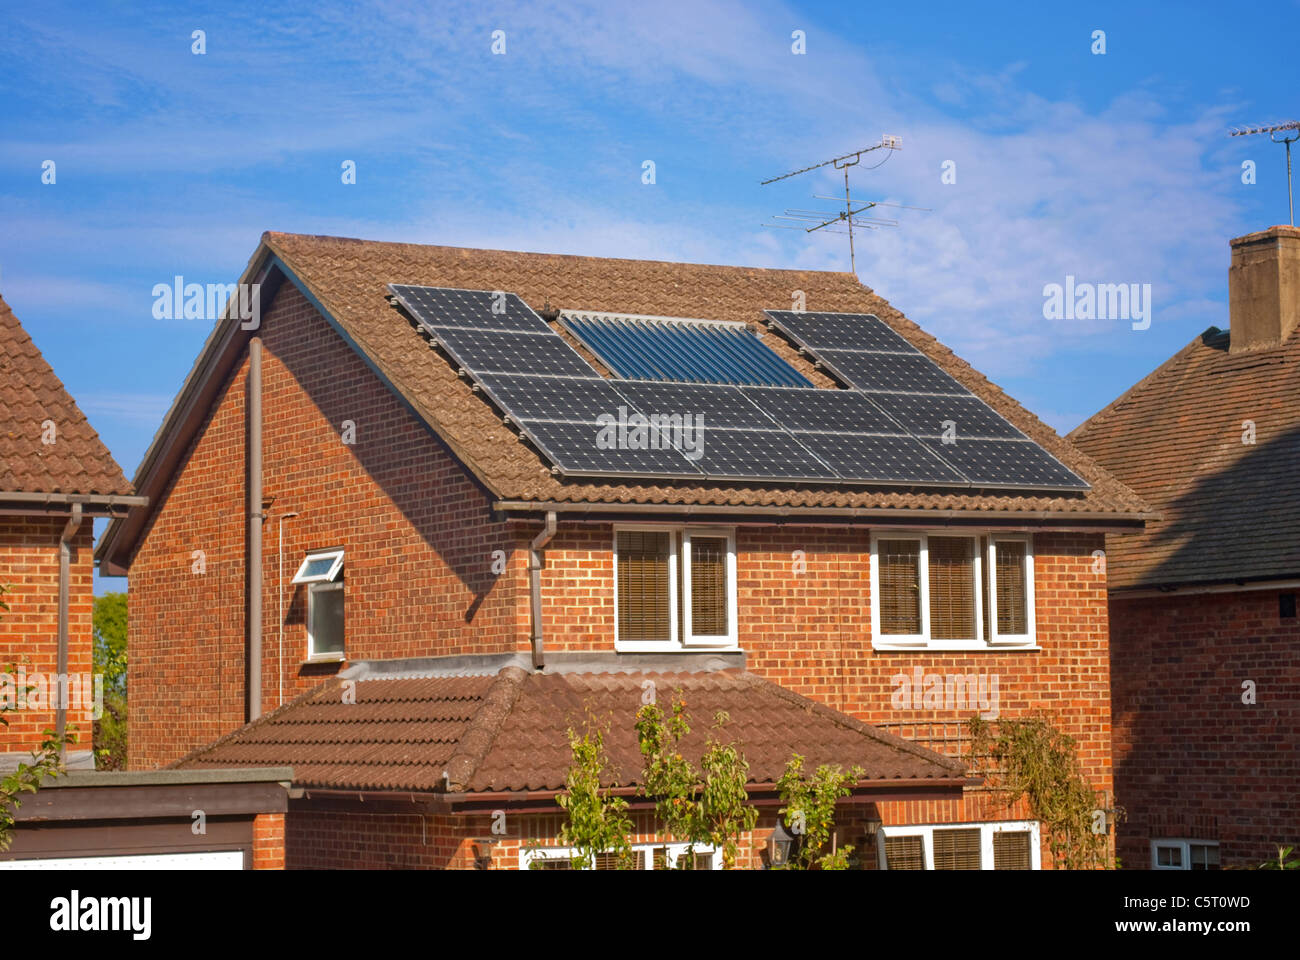 Solar panels on house - Stock Image